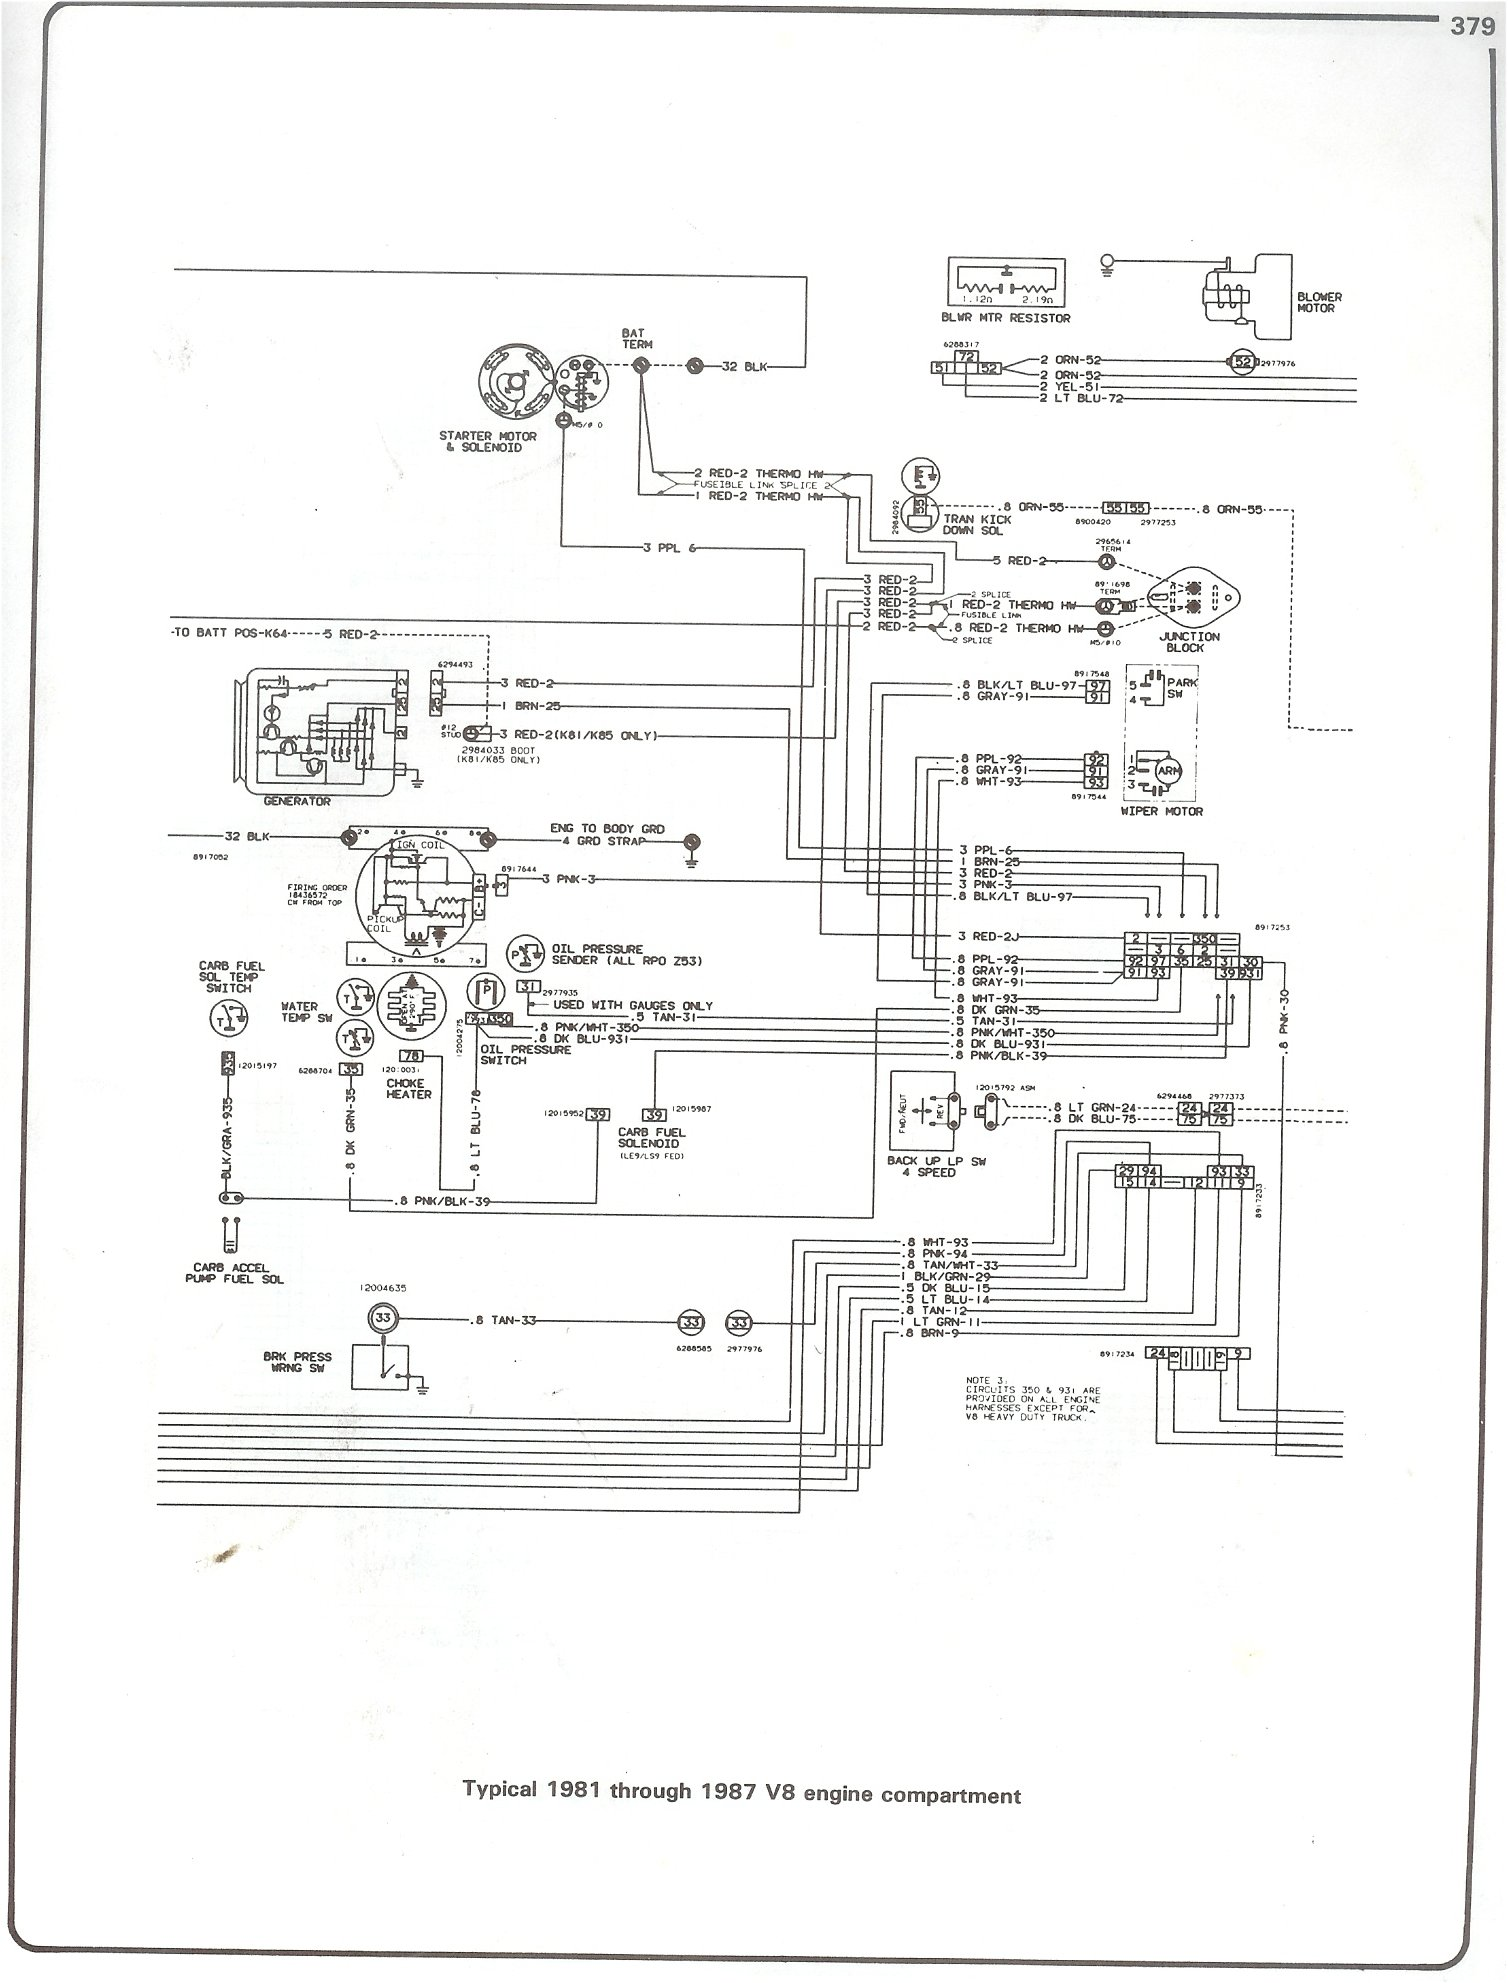 81 87_V8_engine complete 73 87 wiring diagrams chevy truck wiring harness diagram at mr168.co